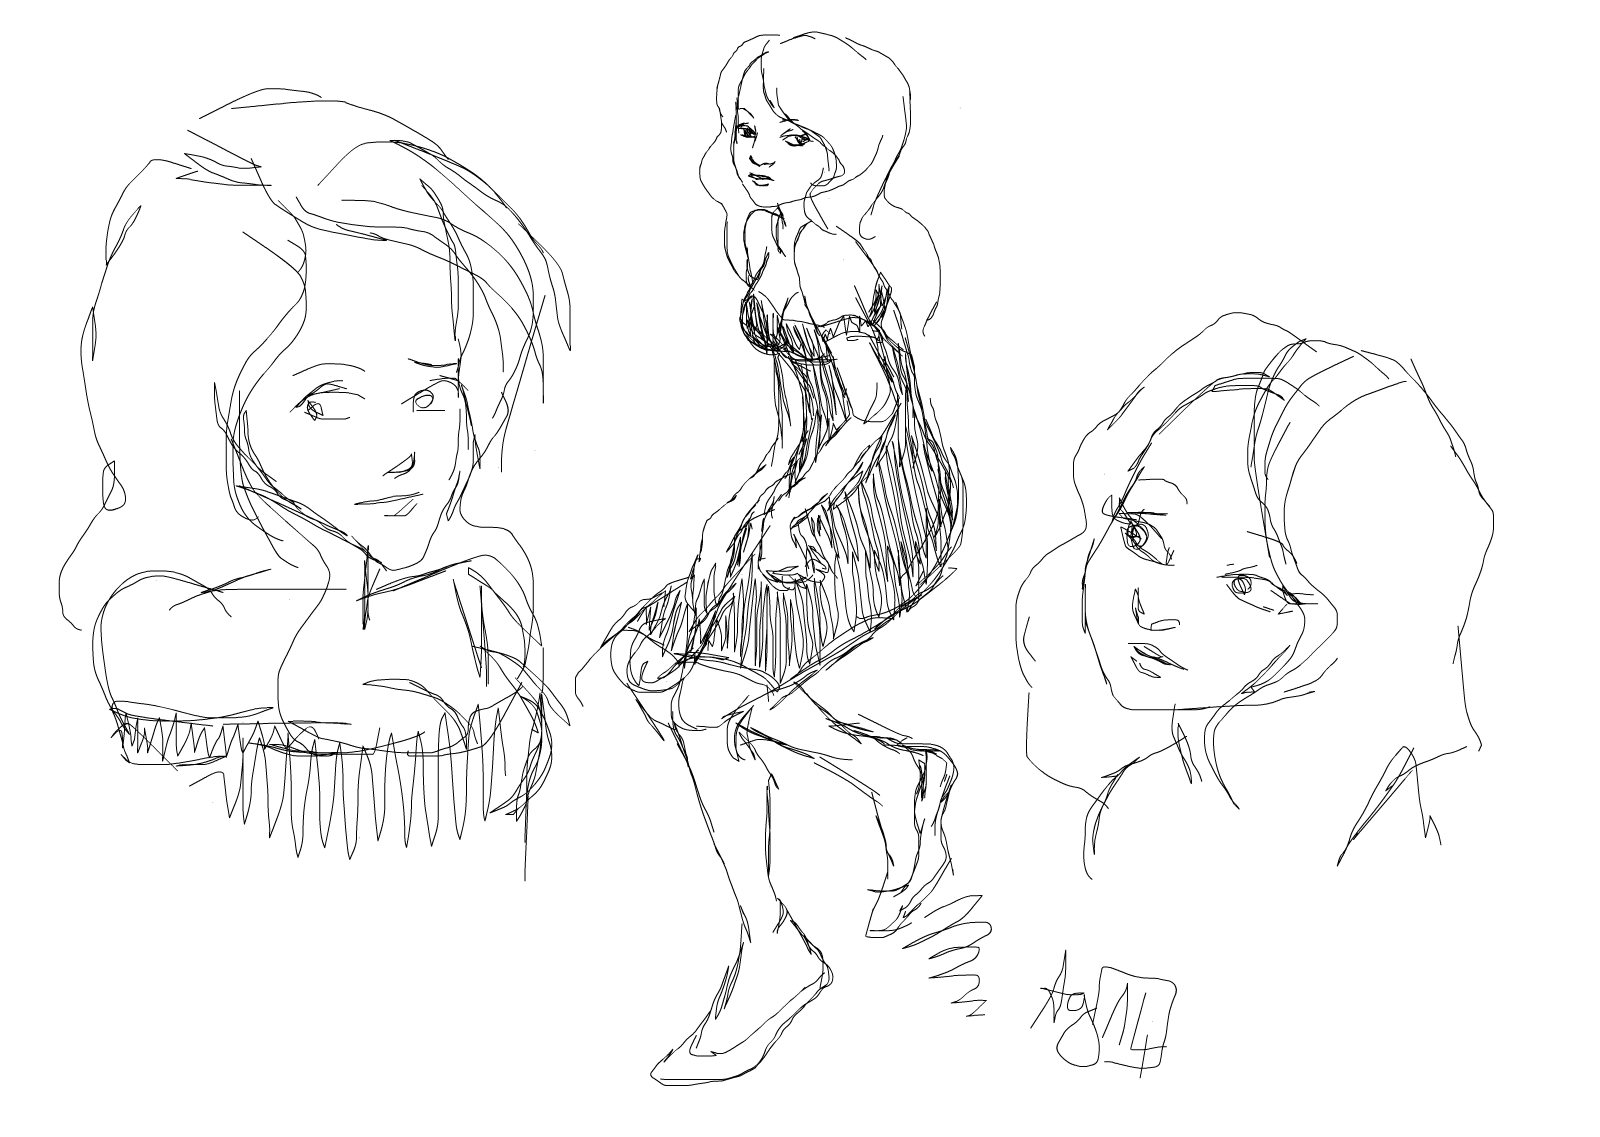 sketchie darling